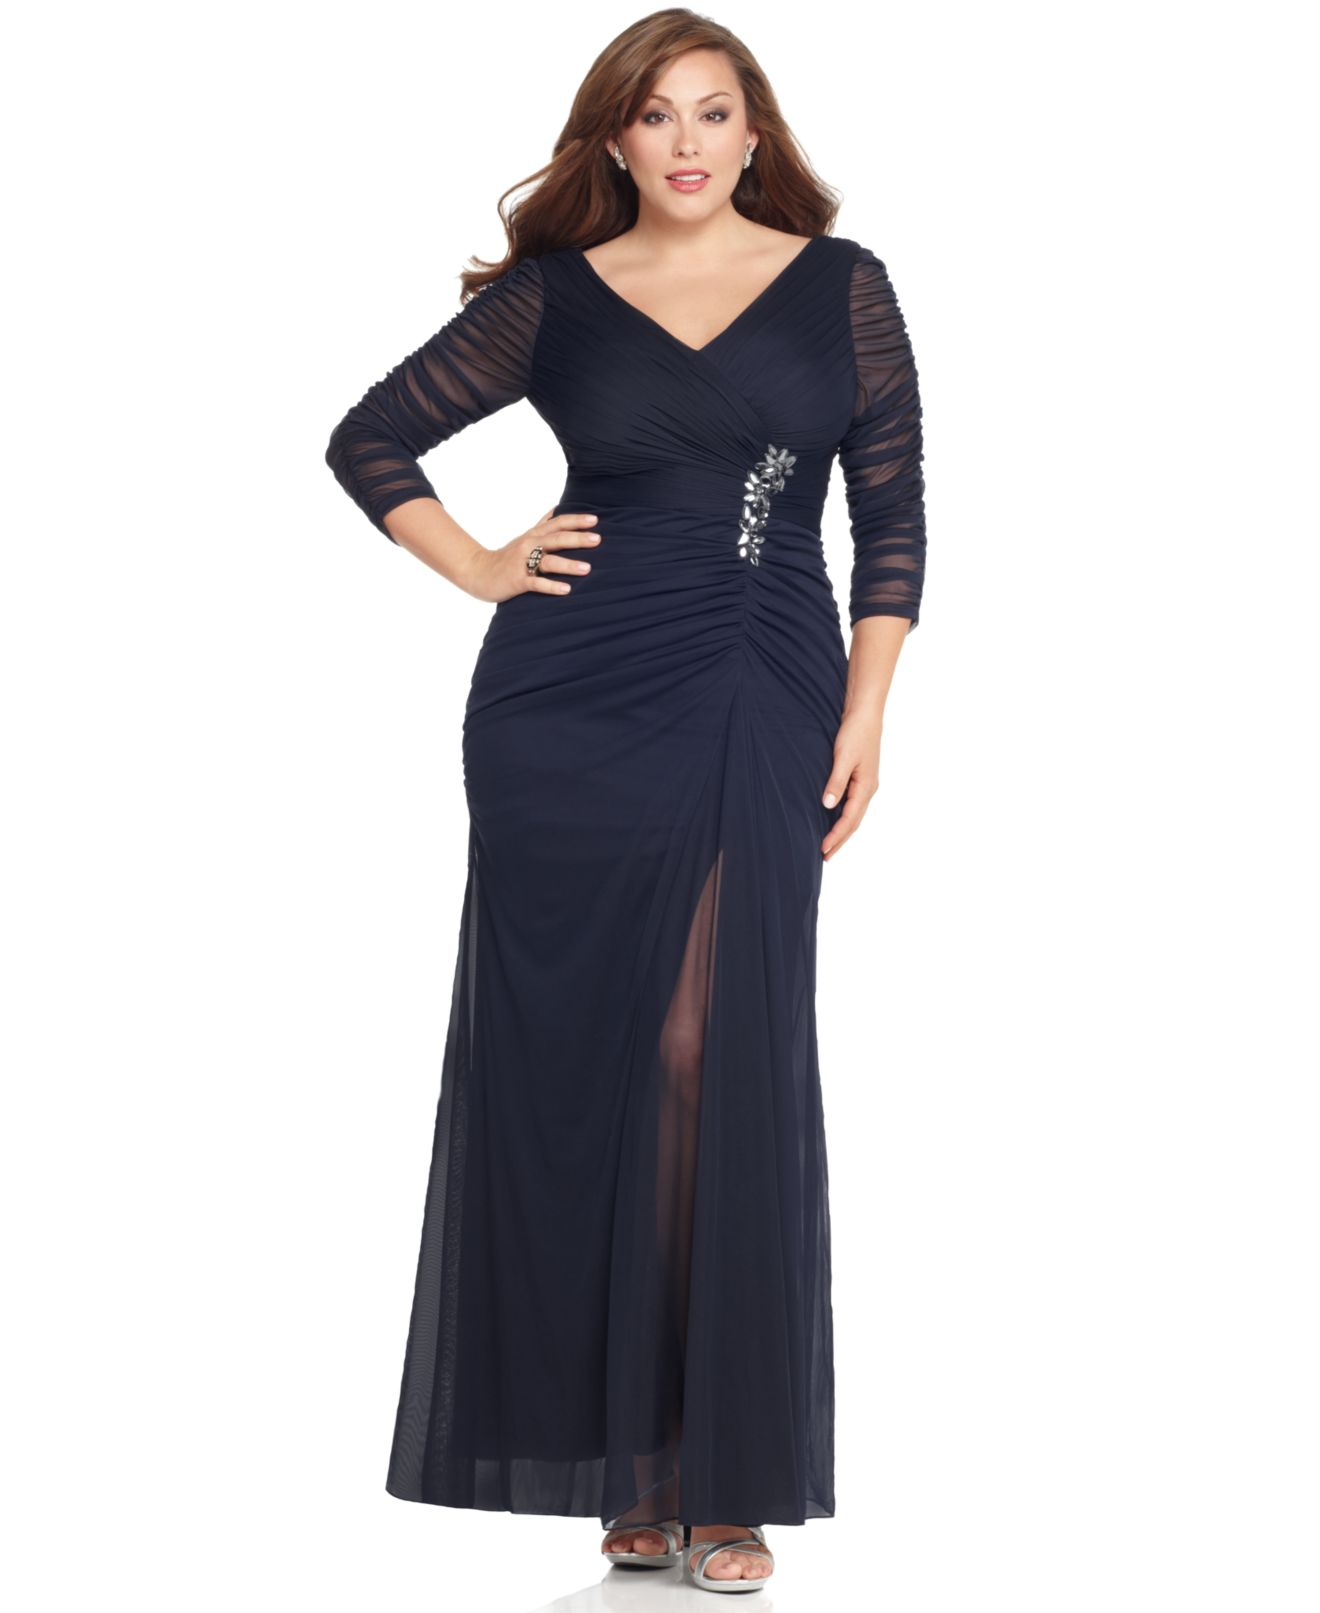 Adrianna Papell Plus Size Evening Dresses